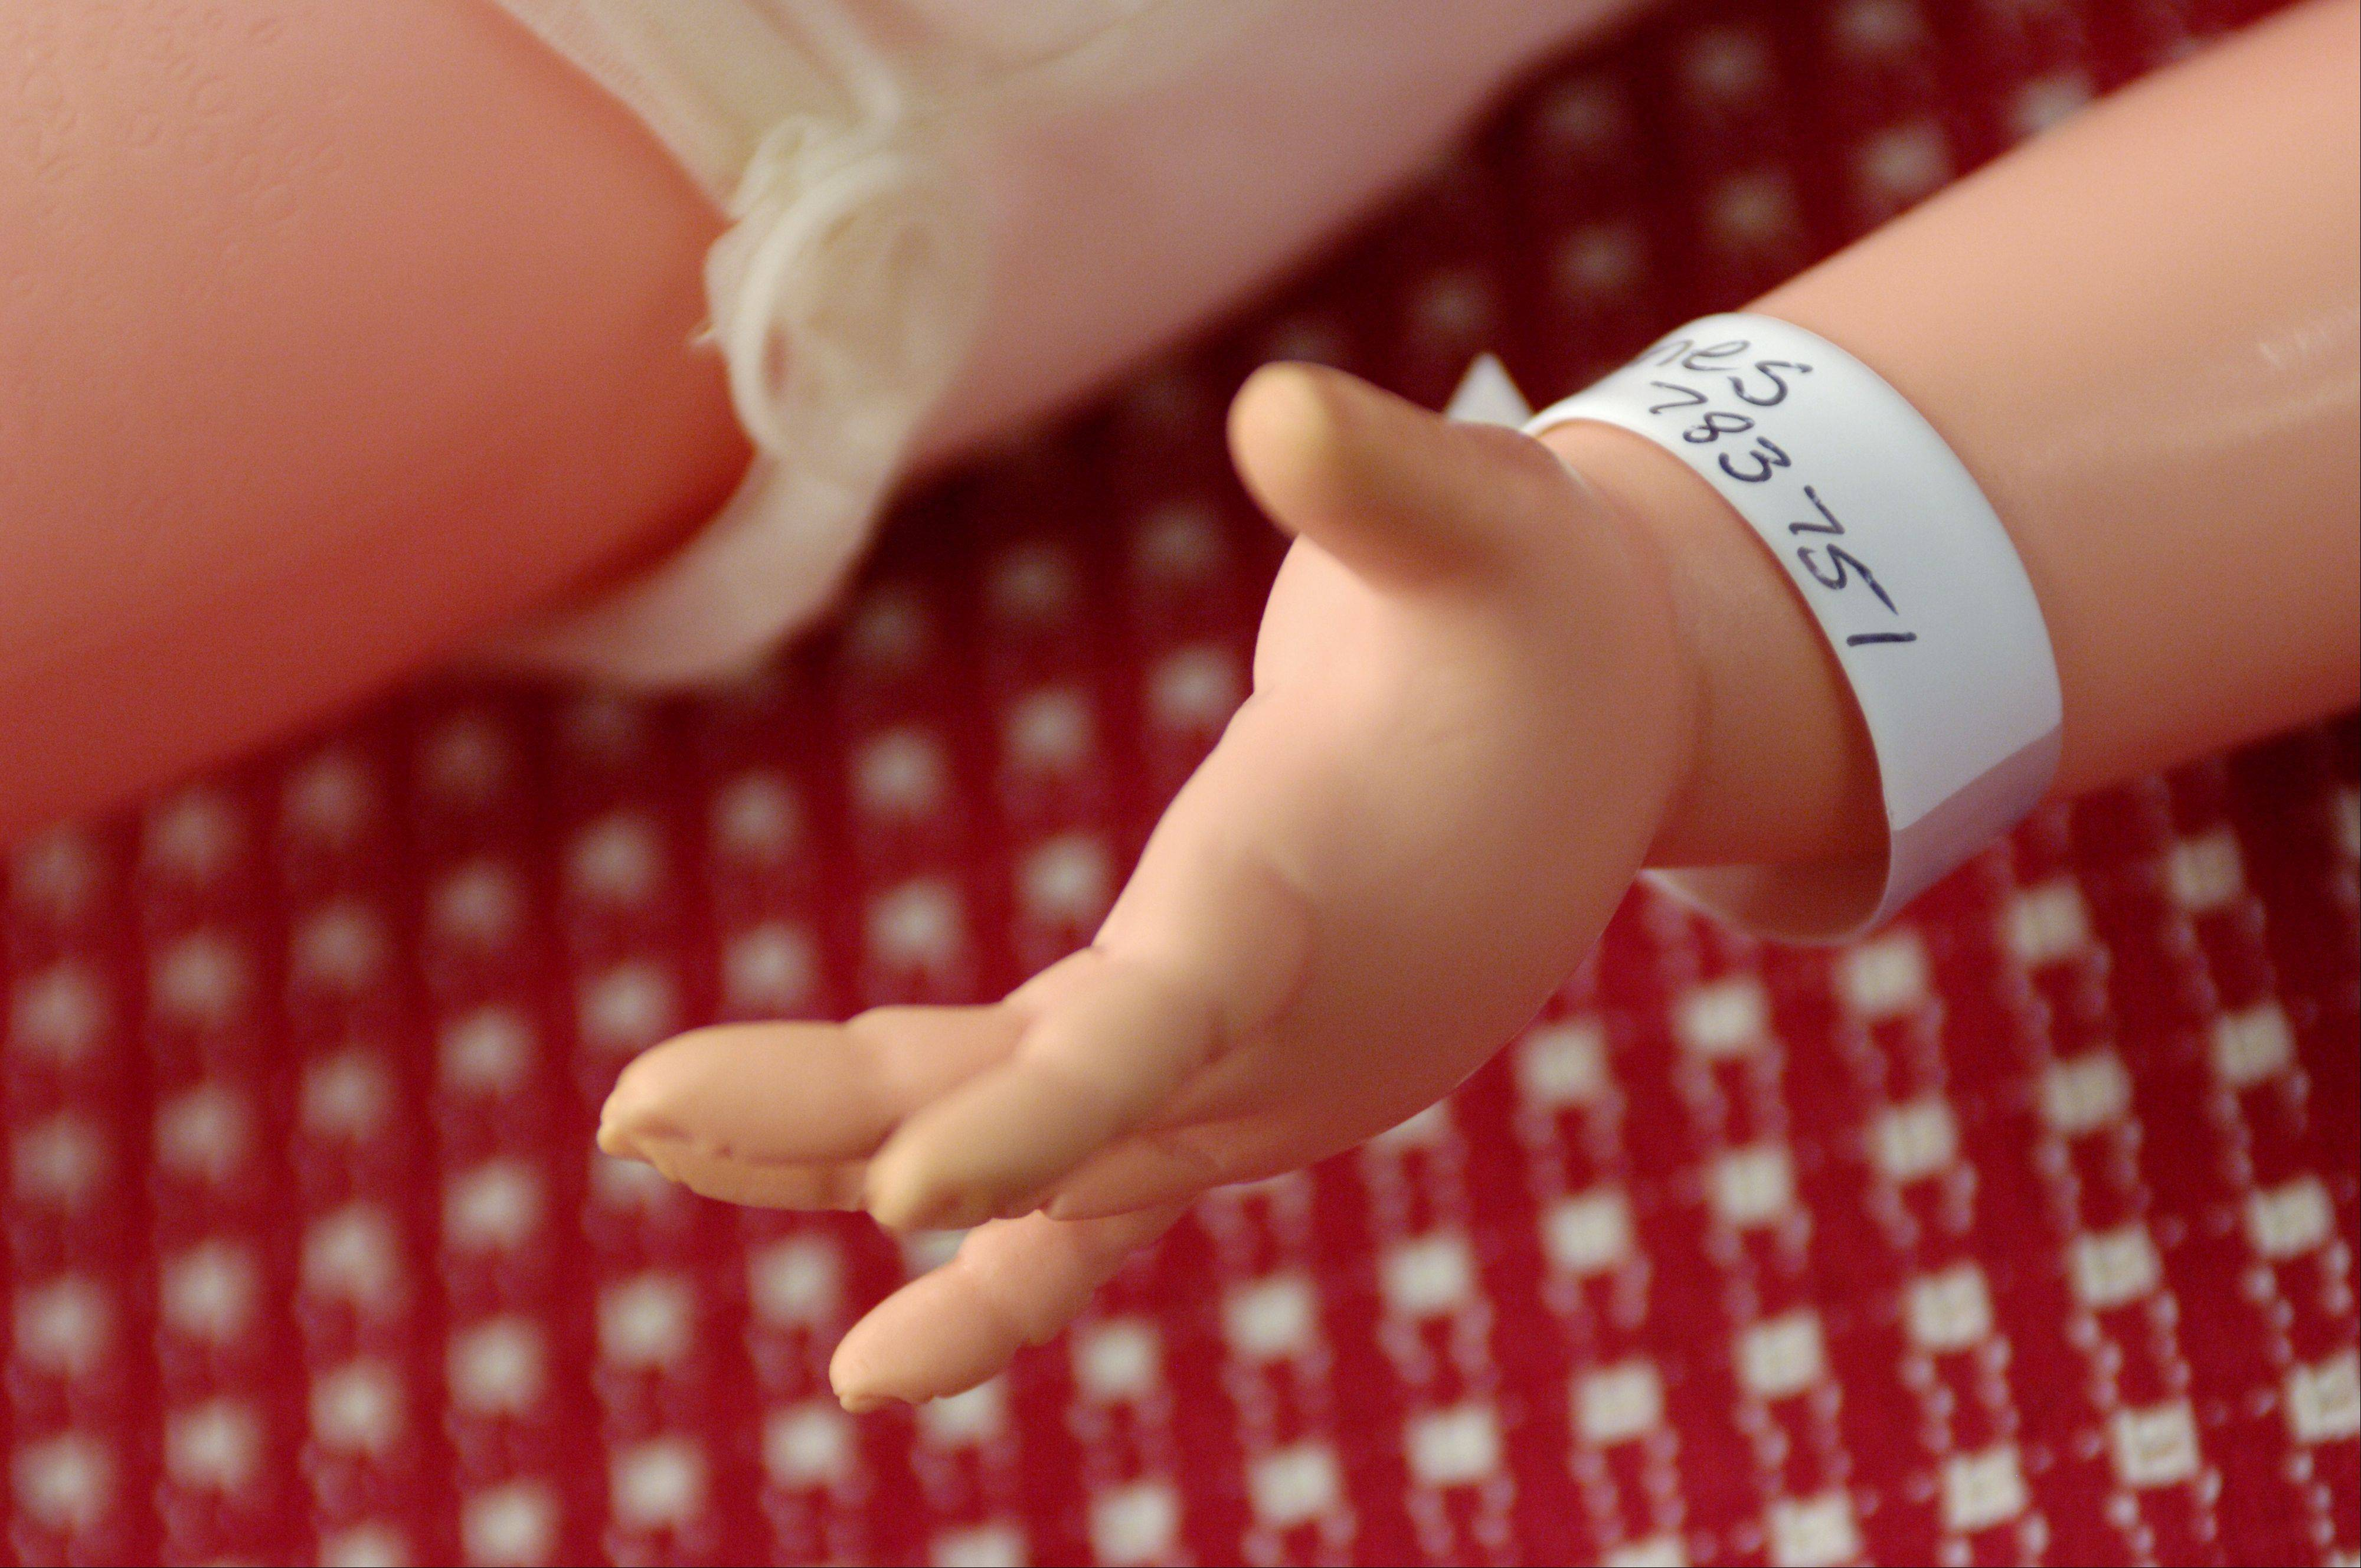 Every patient is given a hospital bracelet when they arrive at the Angelic Creations Doll Hospital in Naperville.